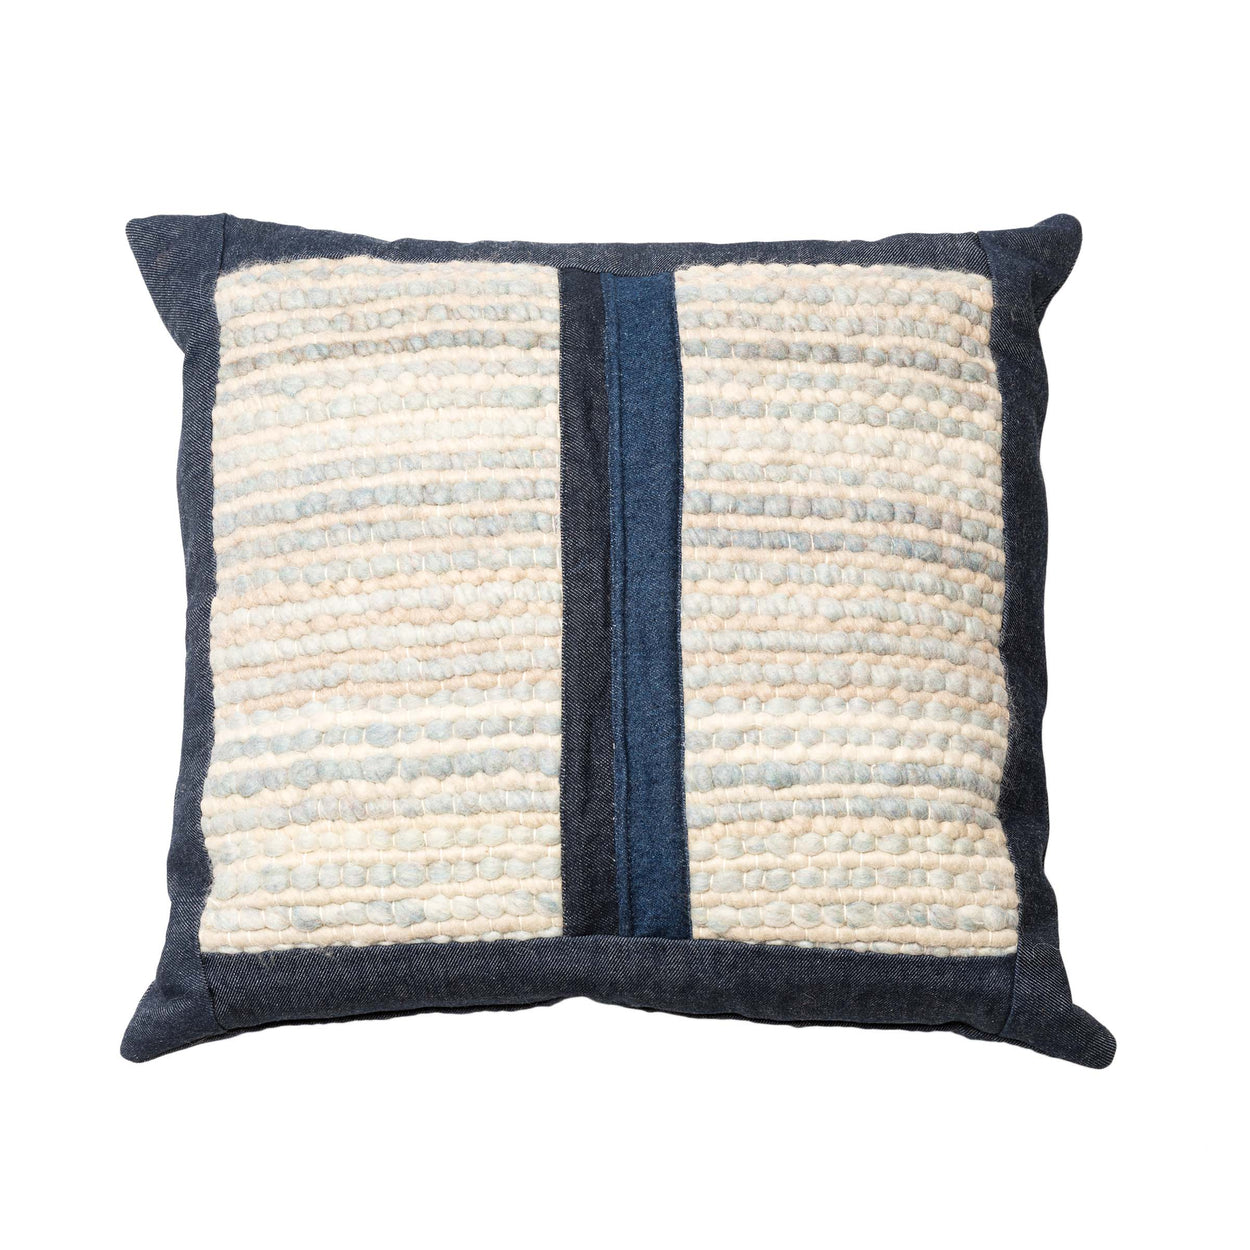 Storyteller Studio - Alpaca Barn Door Pillow